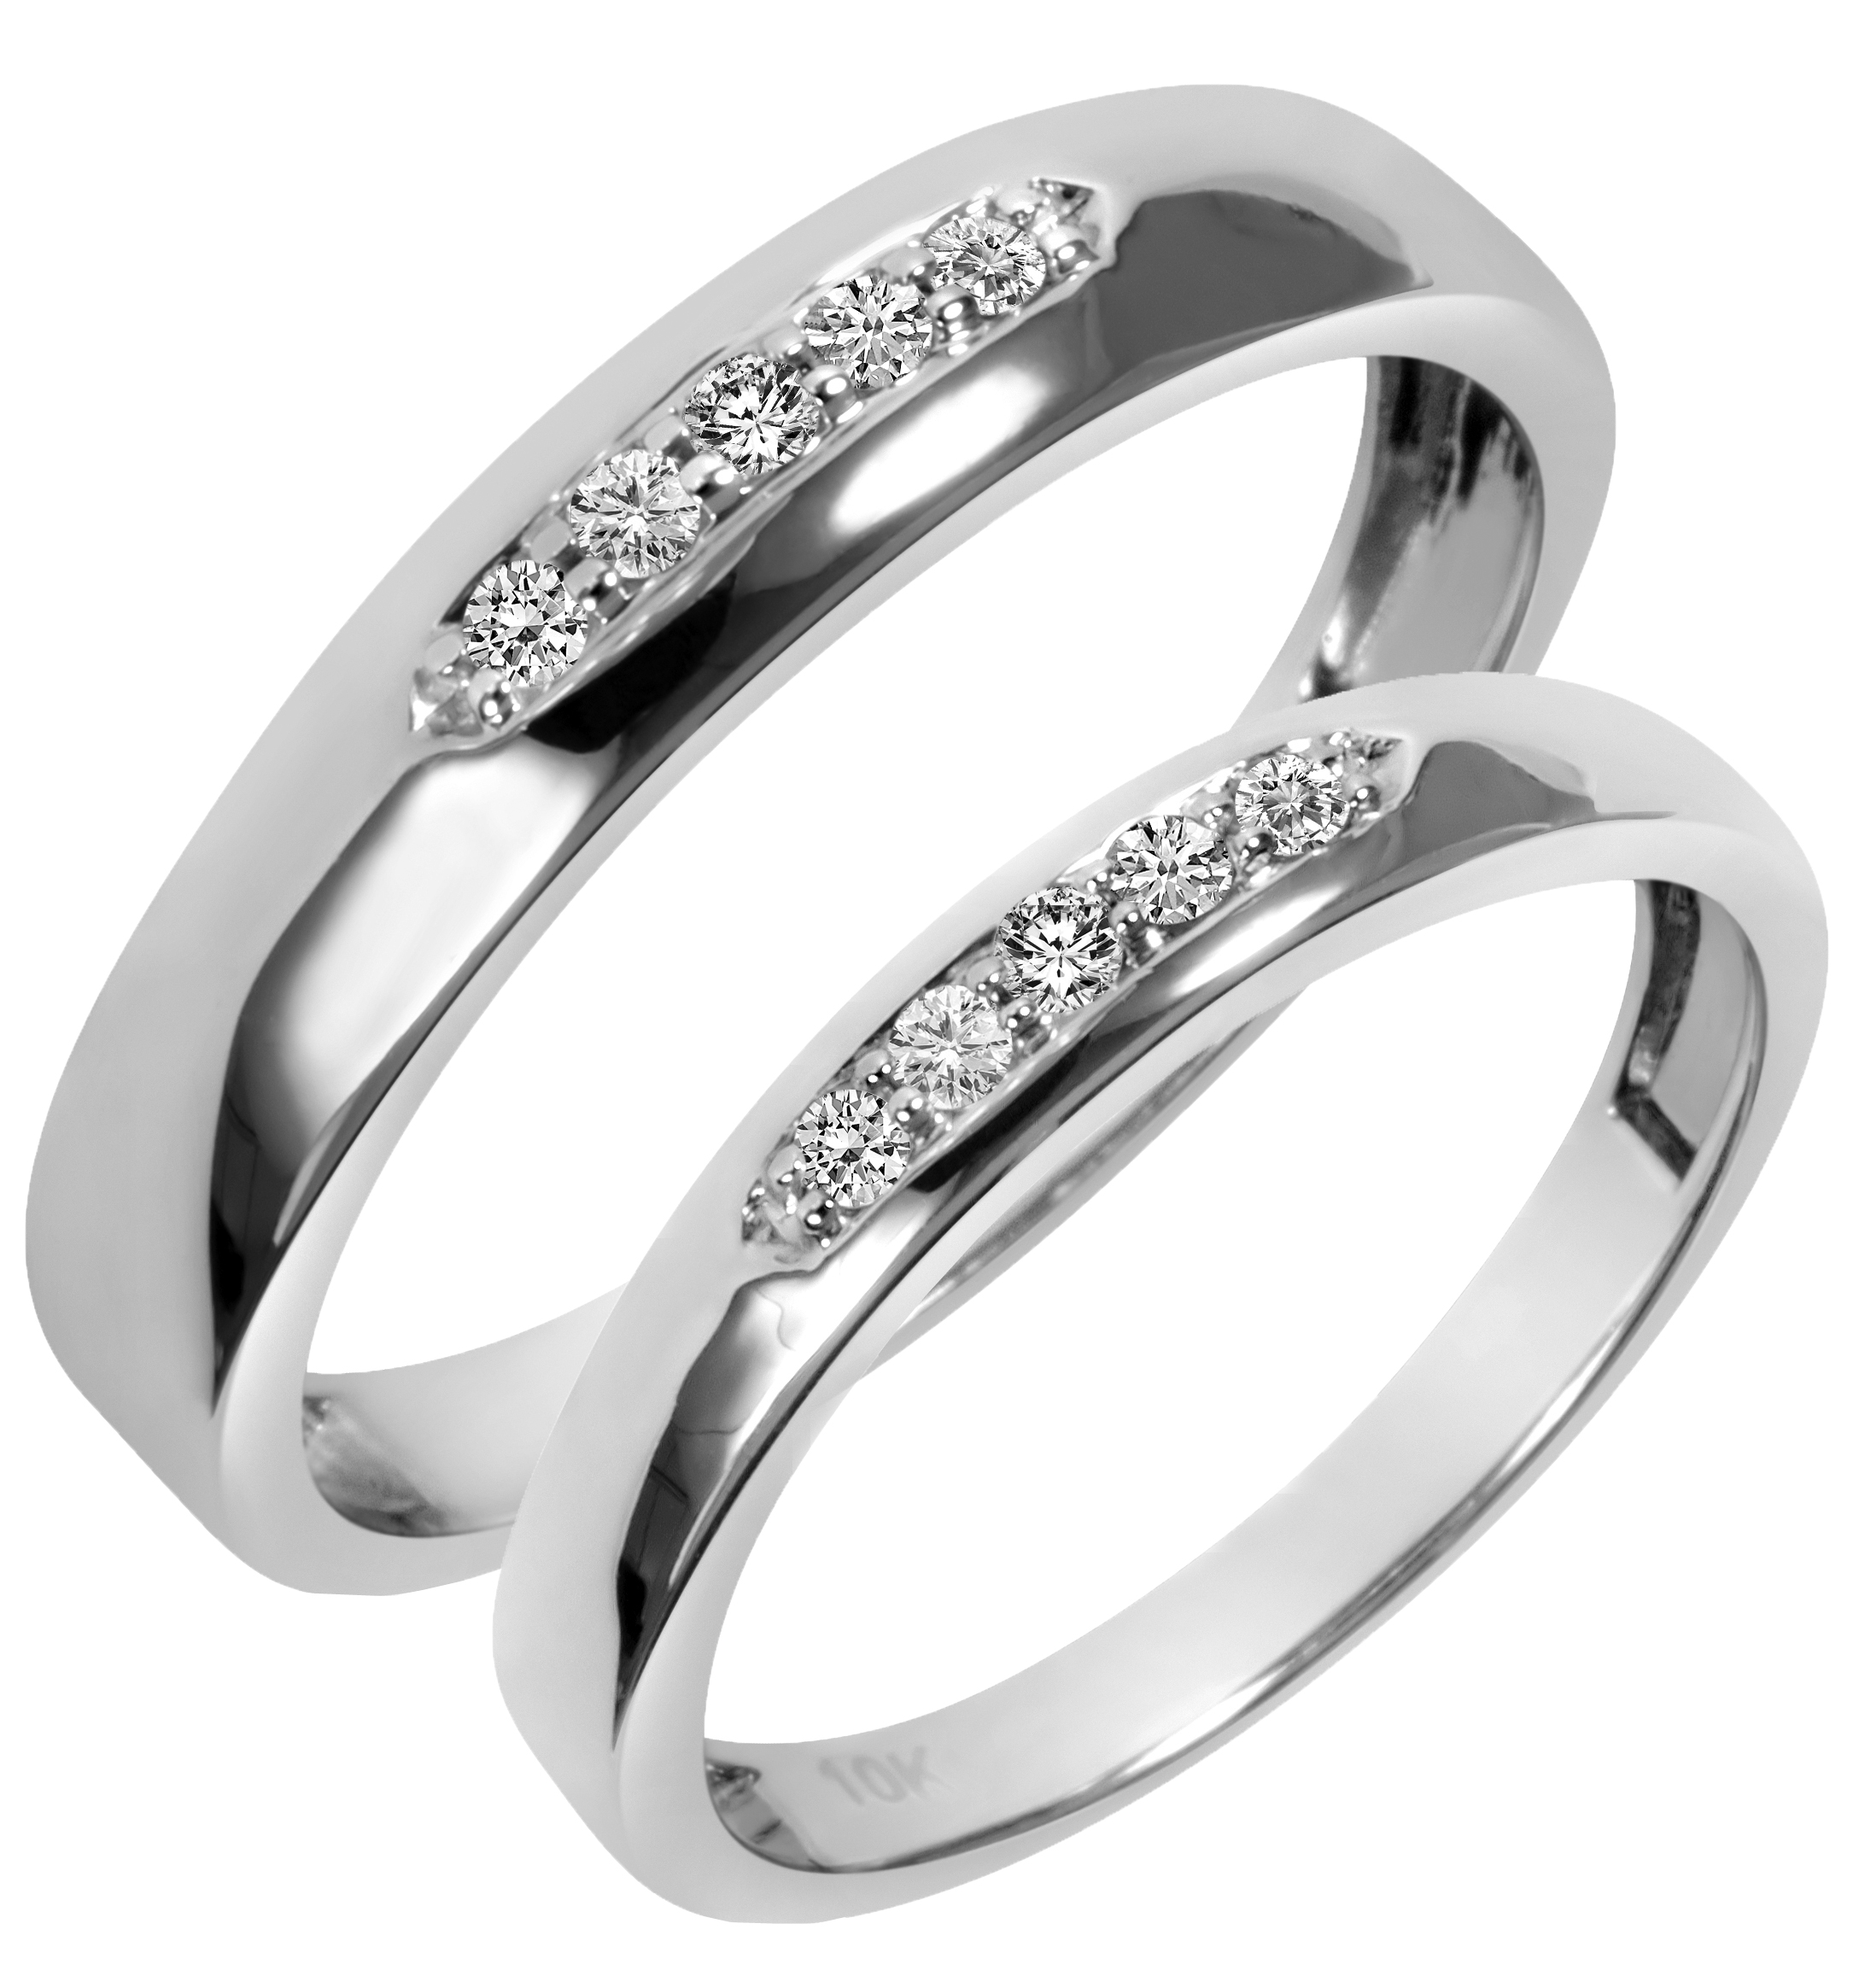 tips for finding the ideal wedding bands wedding bands His and her platinum wedding bands